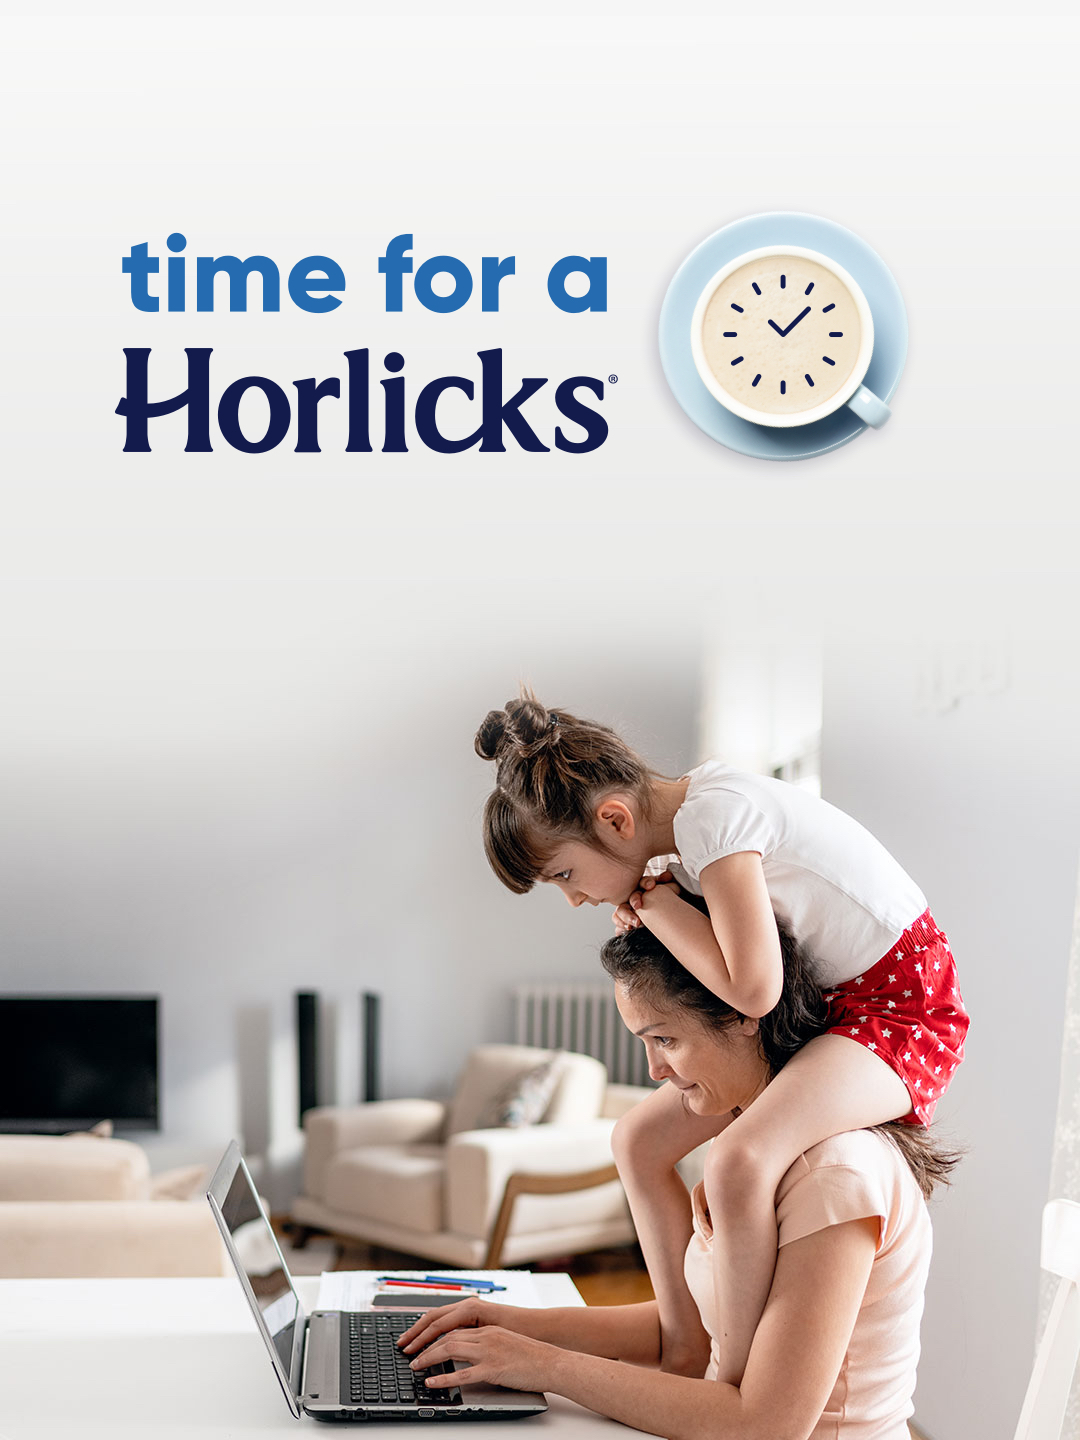 Horlicks research reveals it takes up to 6 days to recover from an embarrassing moment